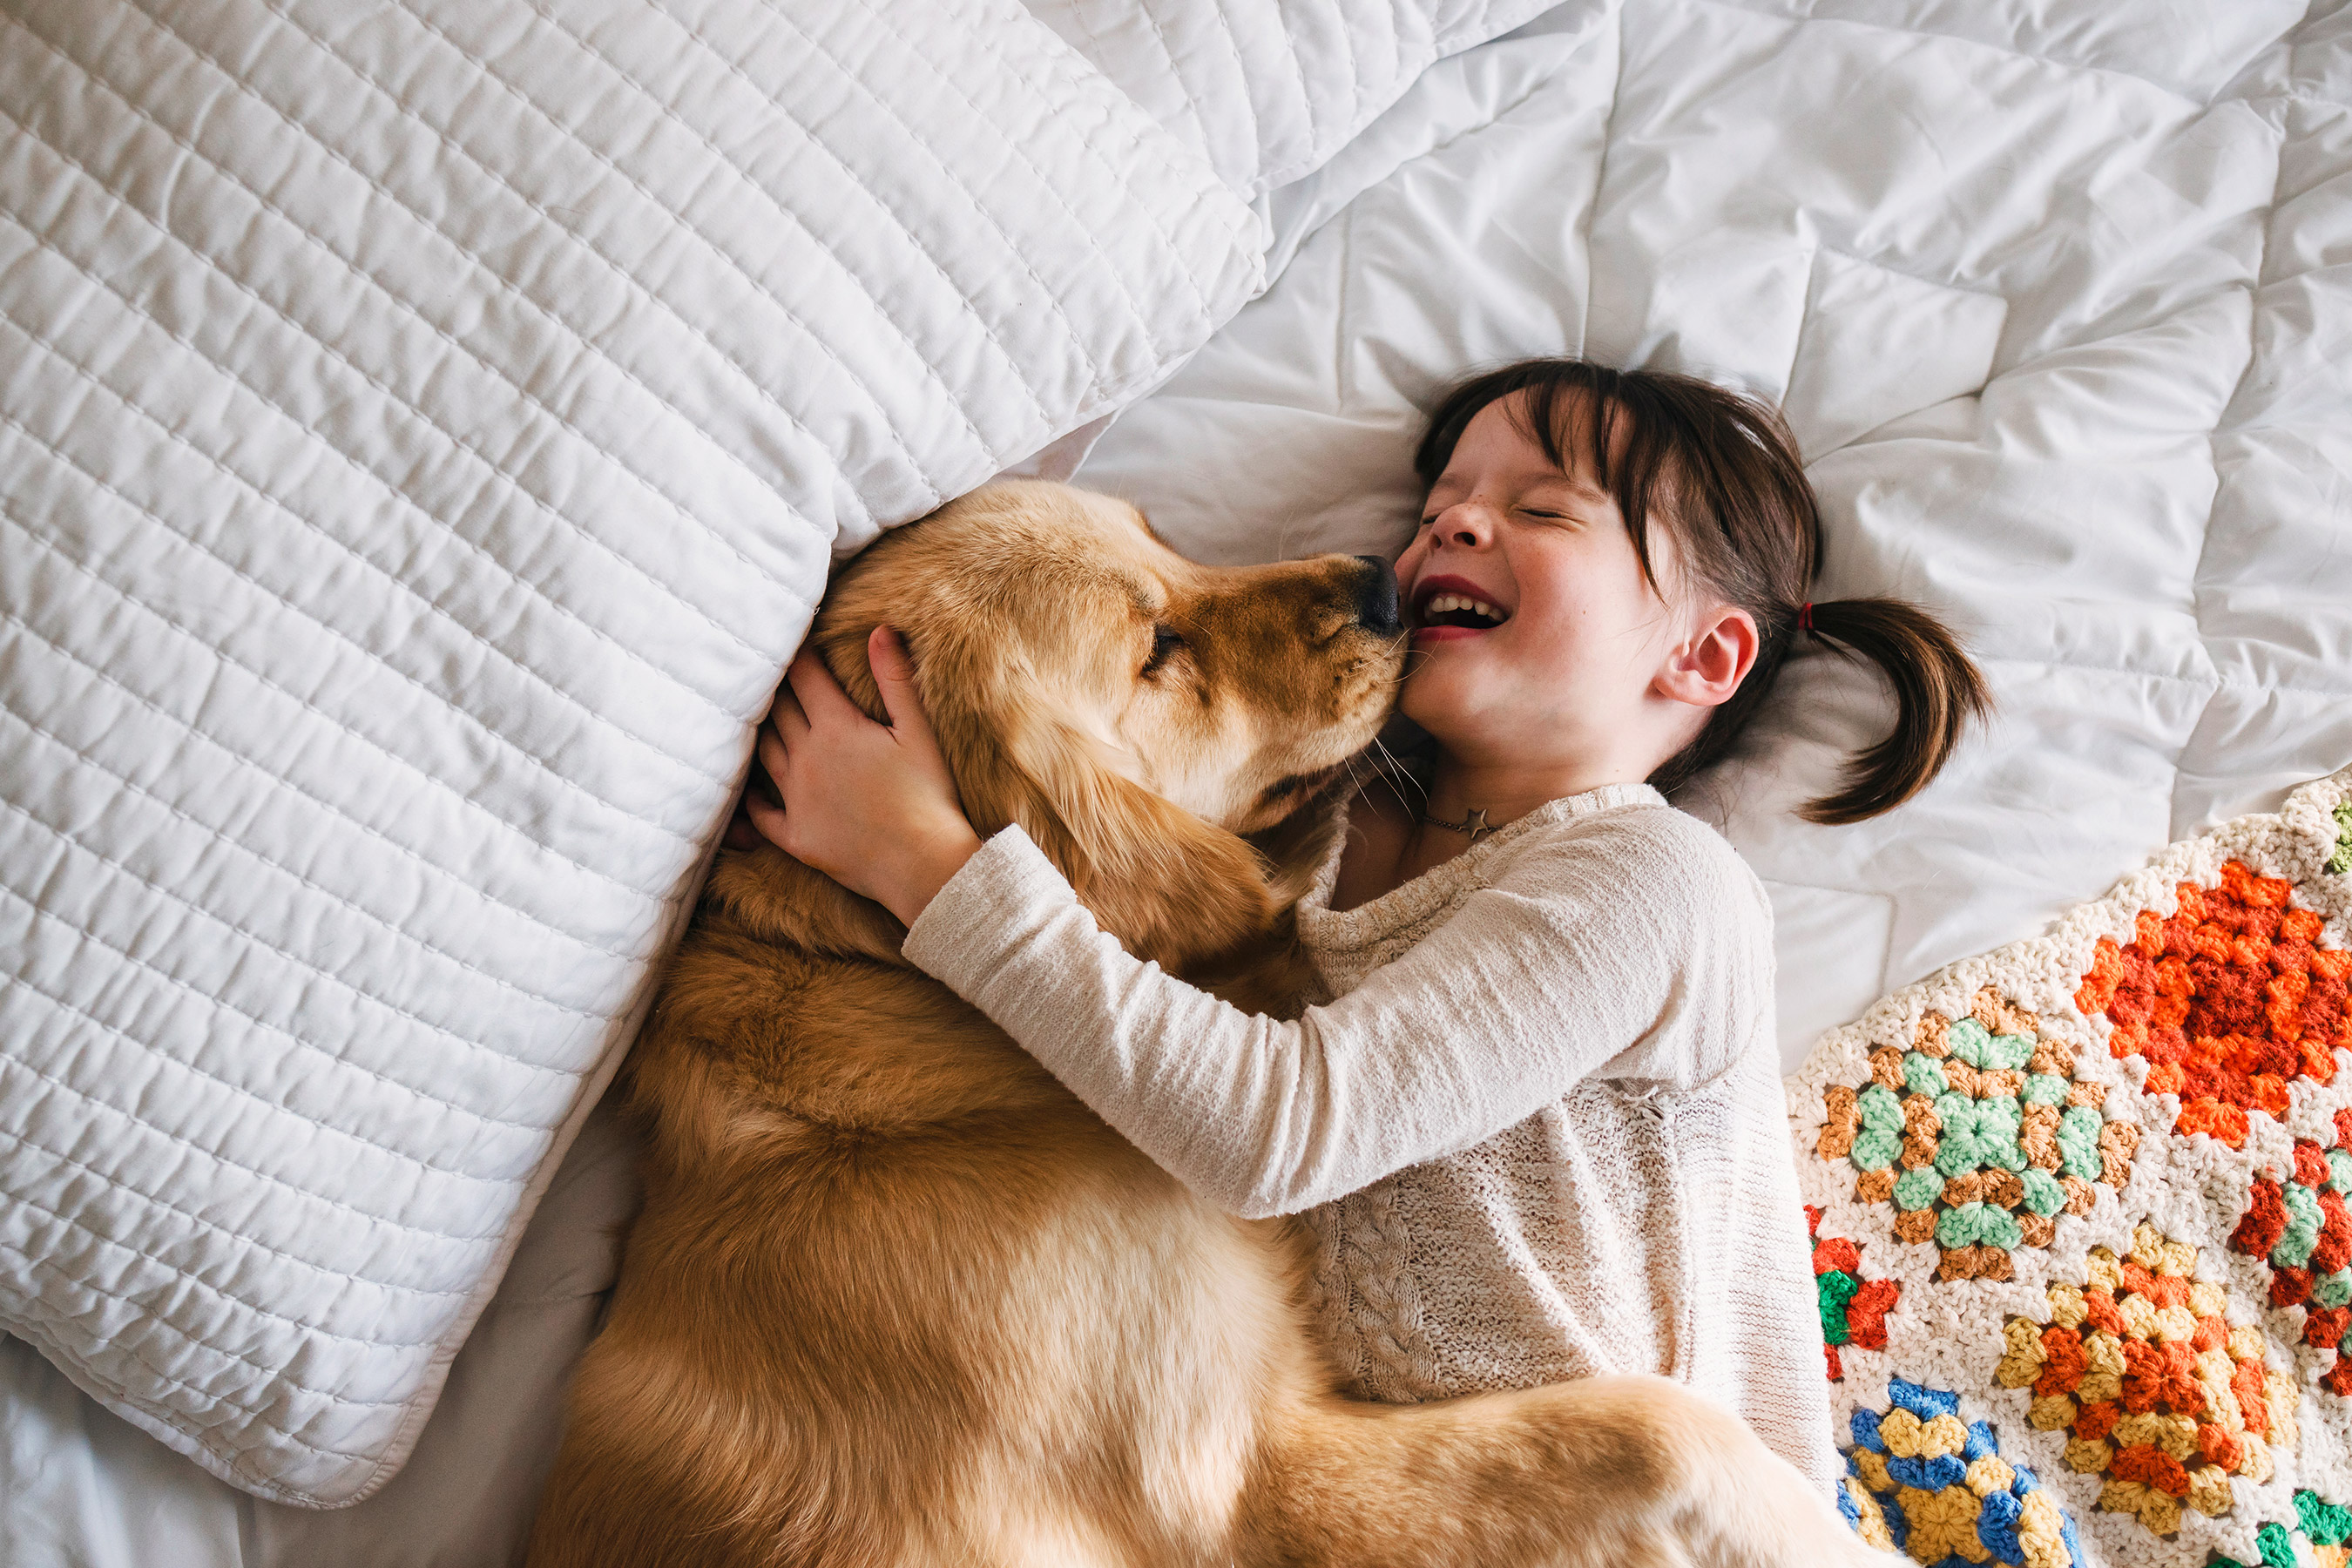 Age-by-Age Guide to Pet Chores for Kids